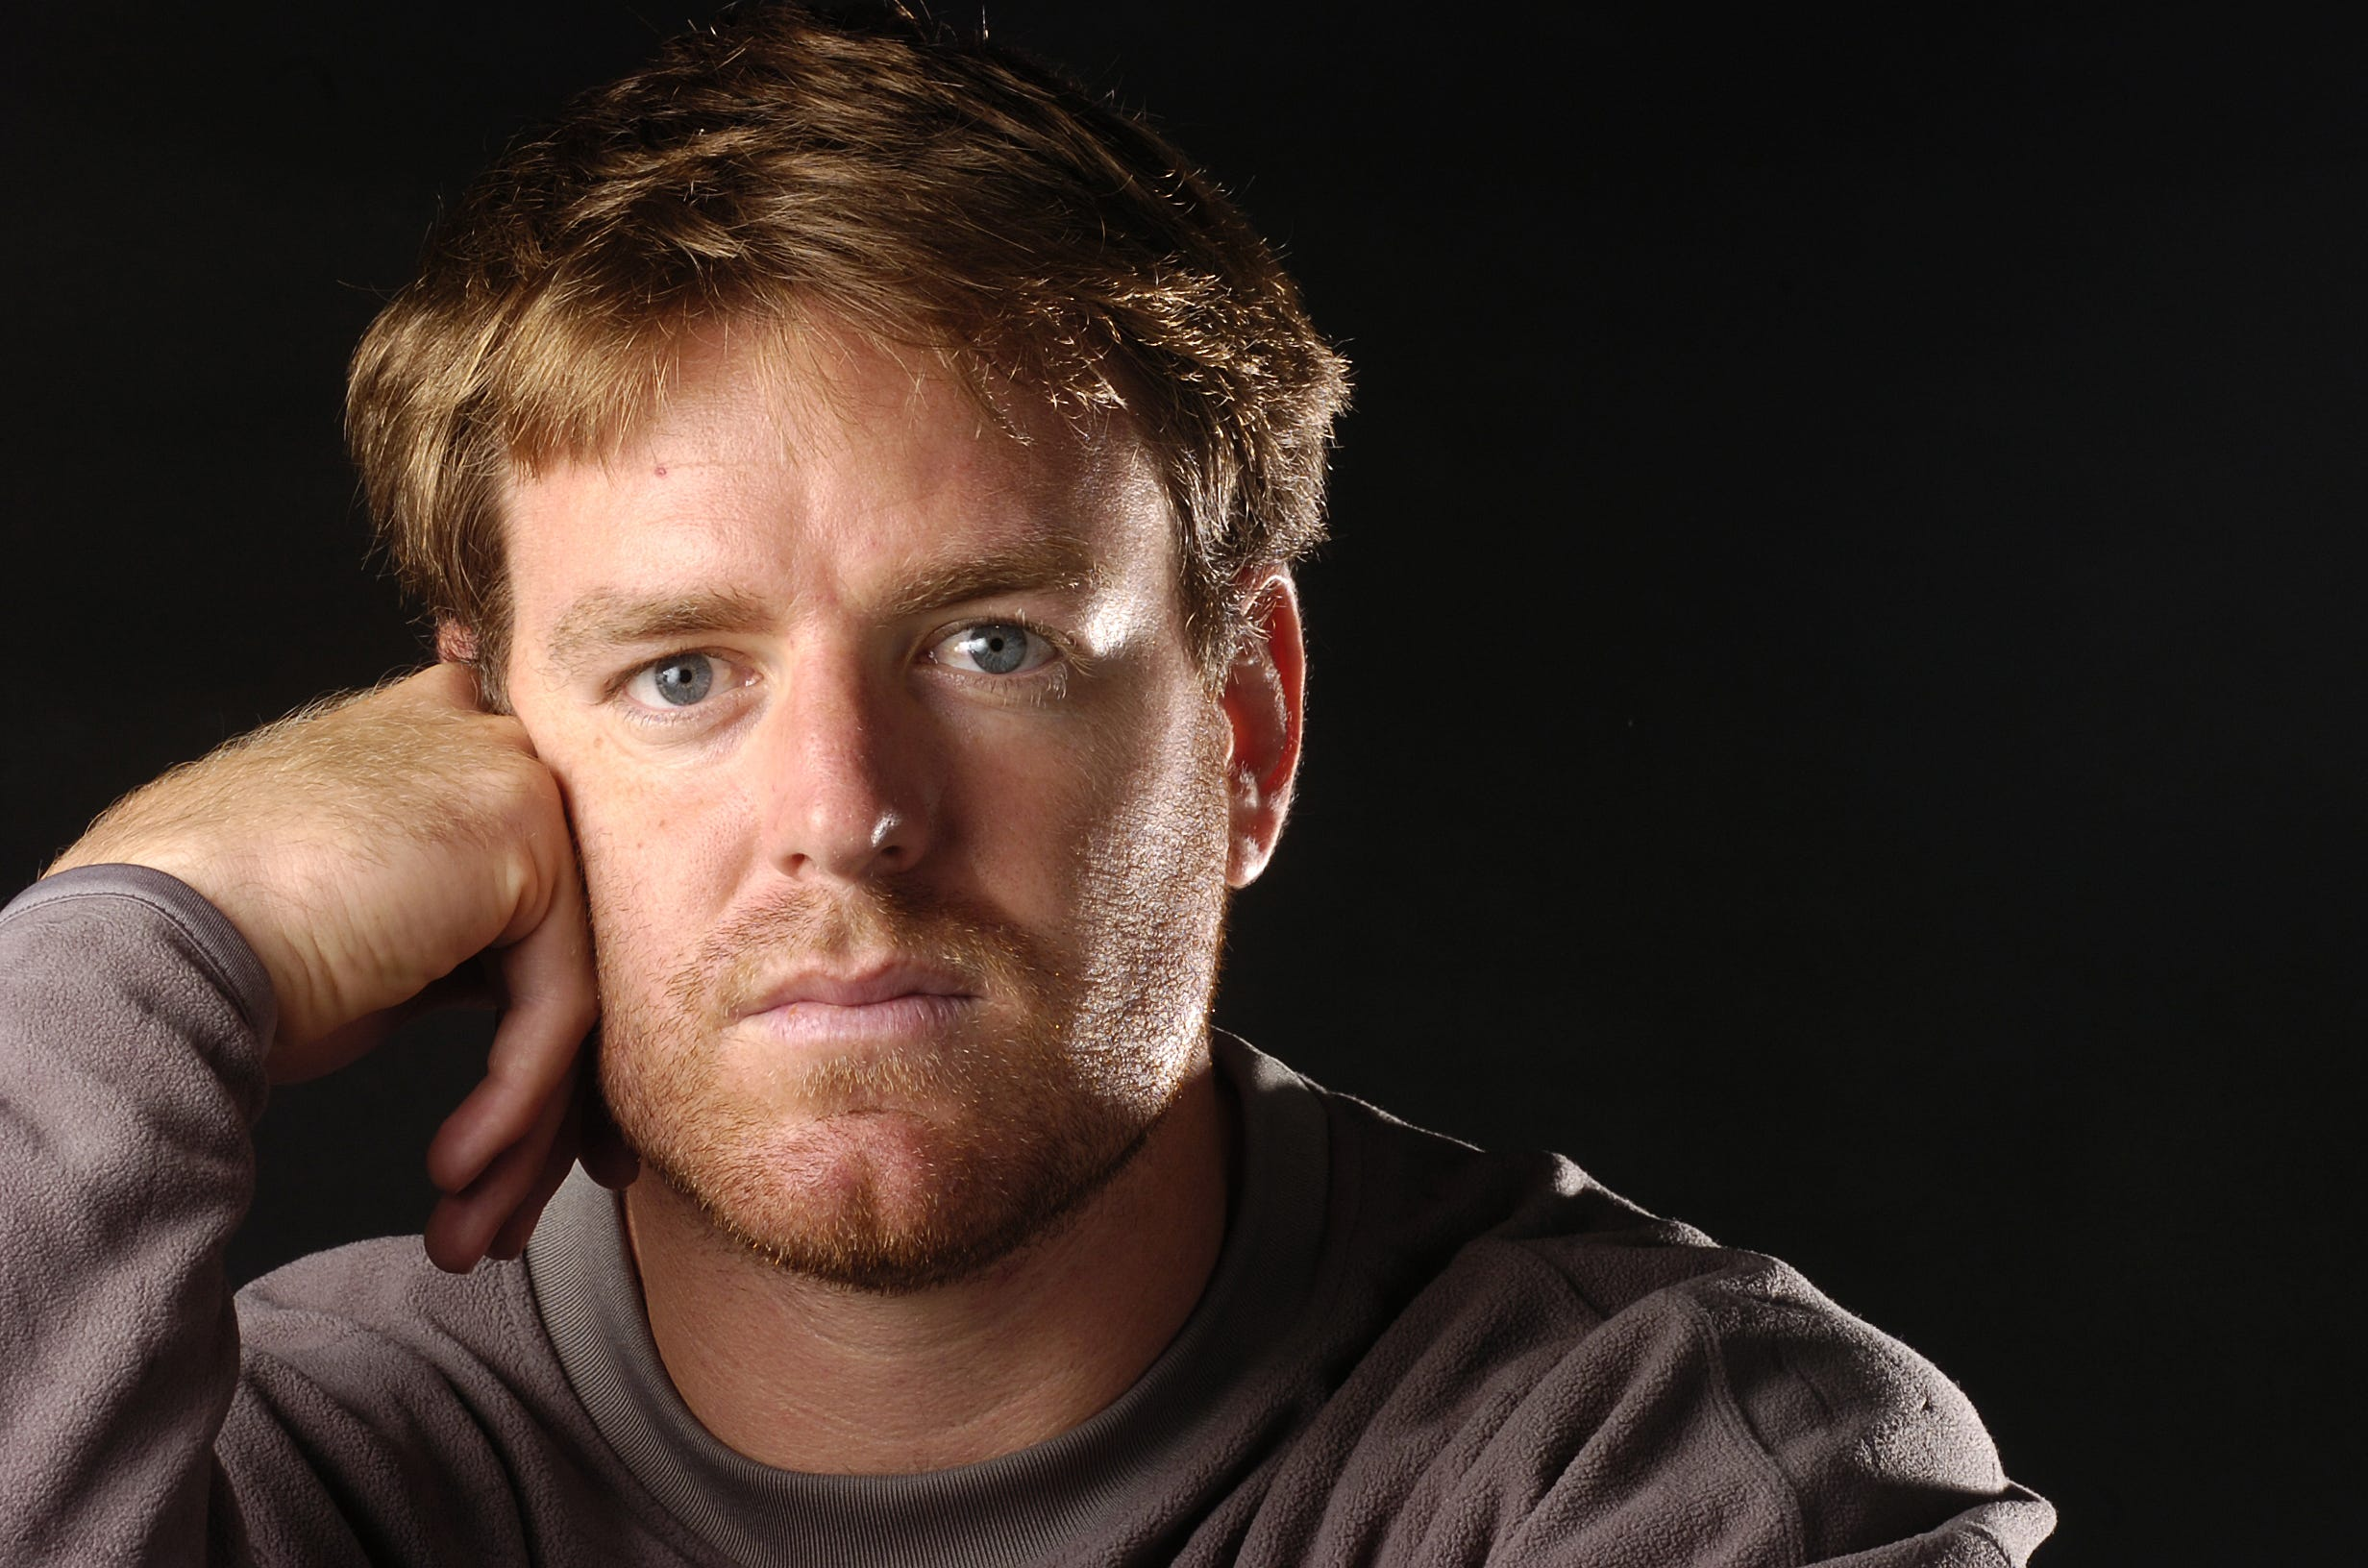 Carson Palmer finally discusses exit from Bengals on 'A Football Life'